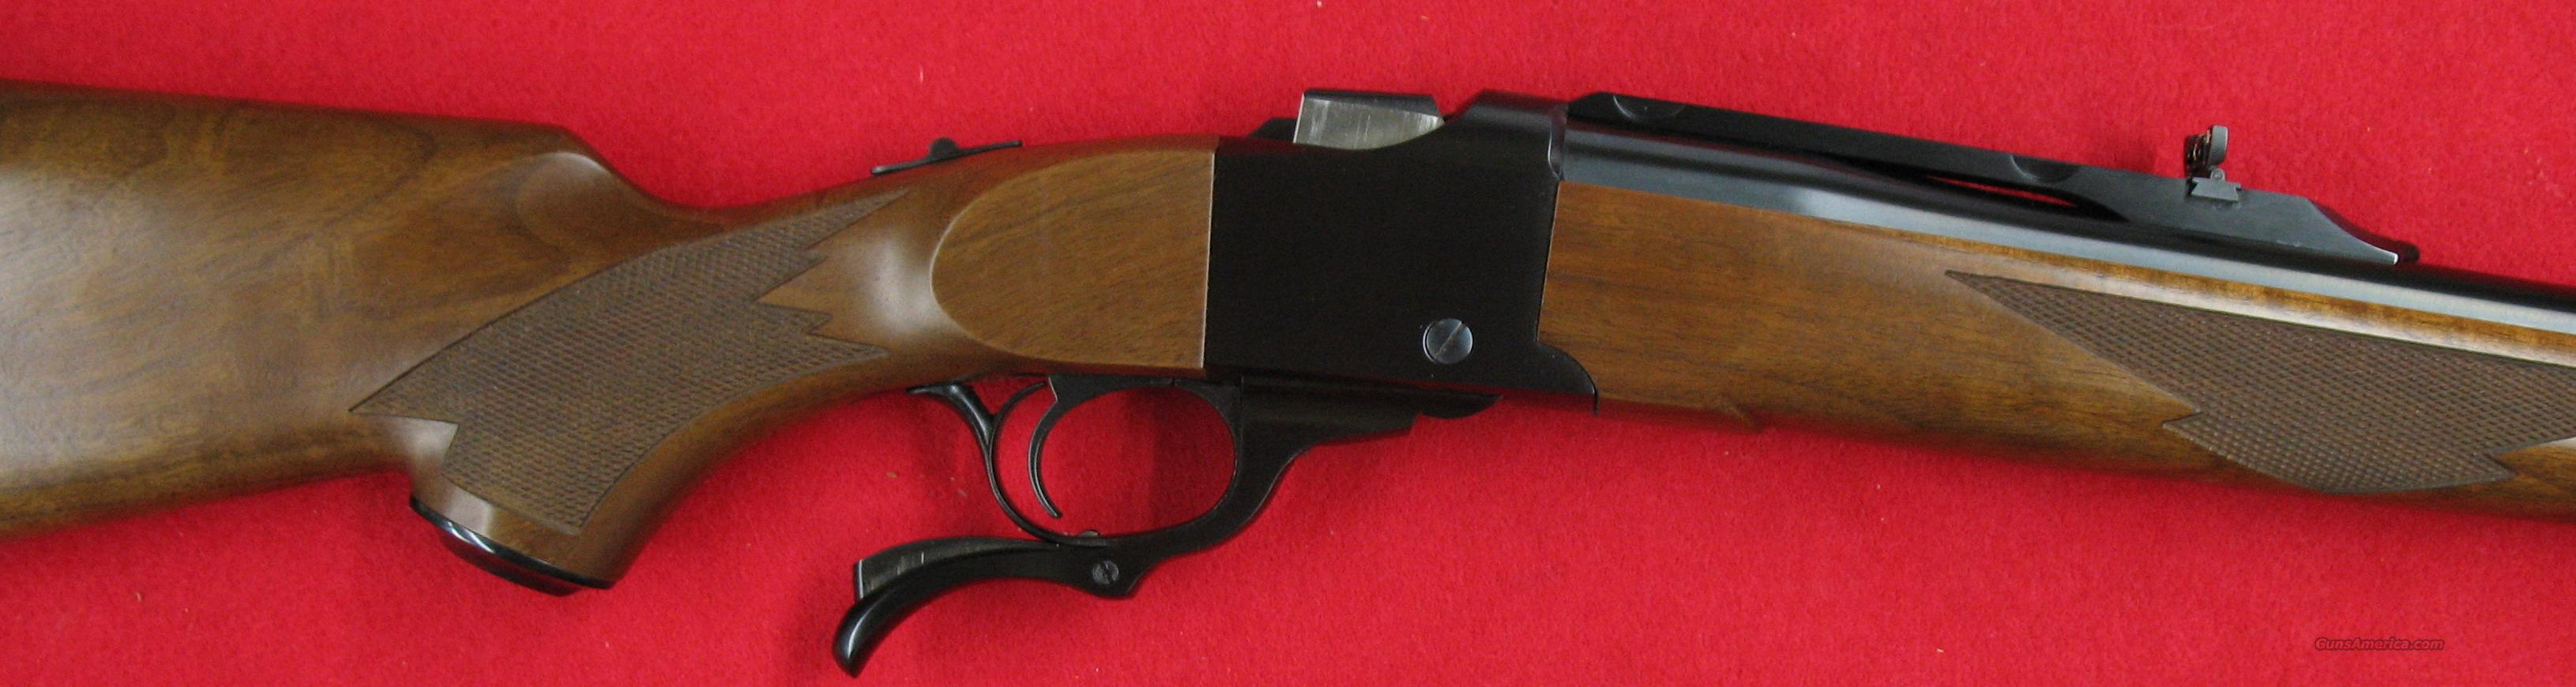 No.1-S Med.Sporter 45-70Gov't  Blue NIB  Guns > Rifles > Ruger Rifles > #1 Type